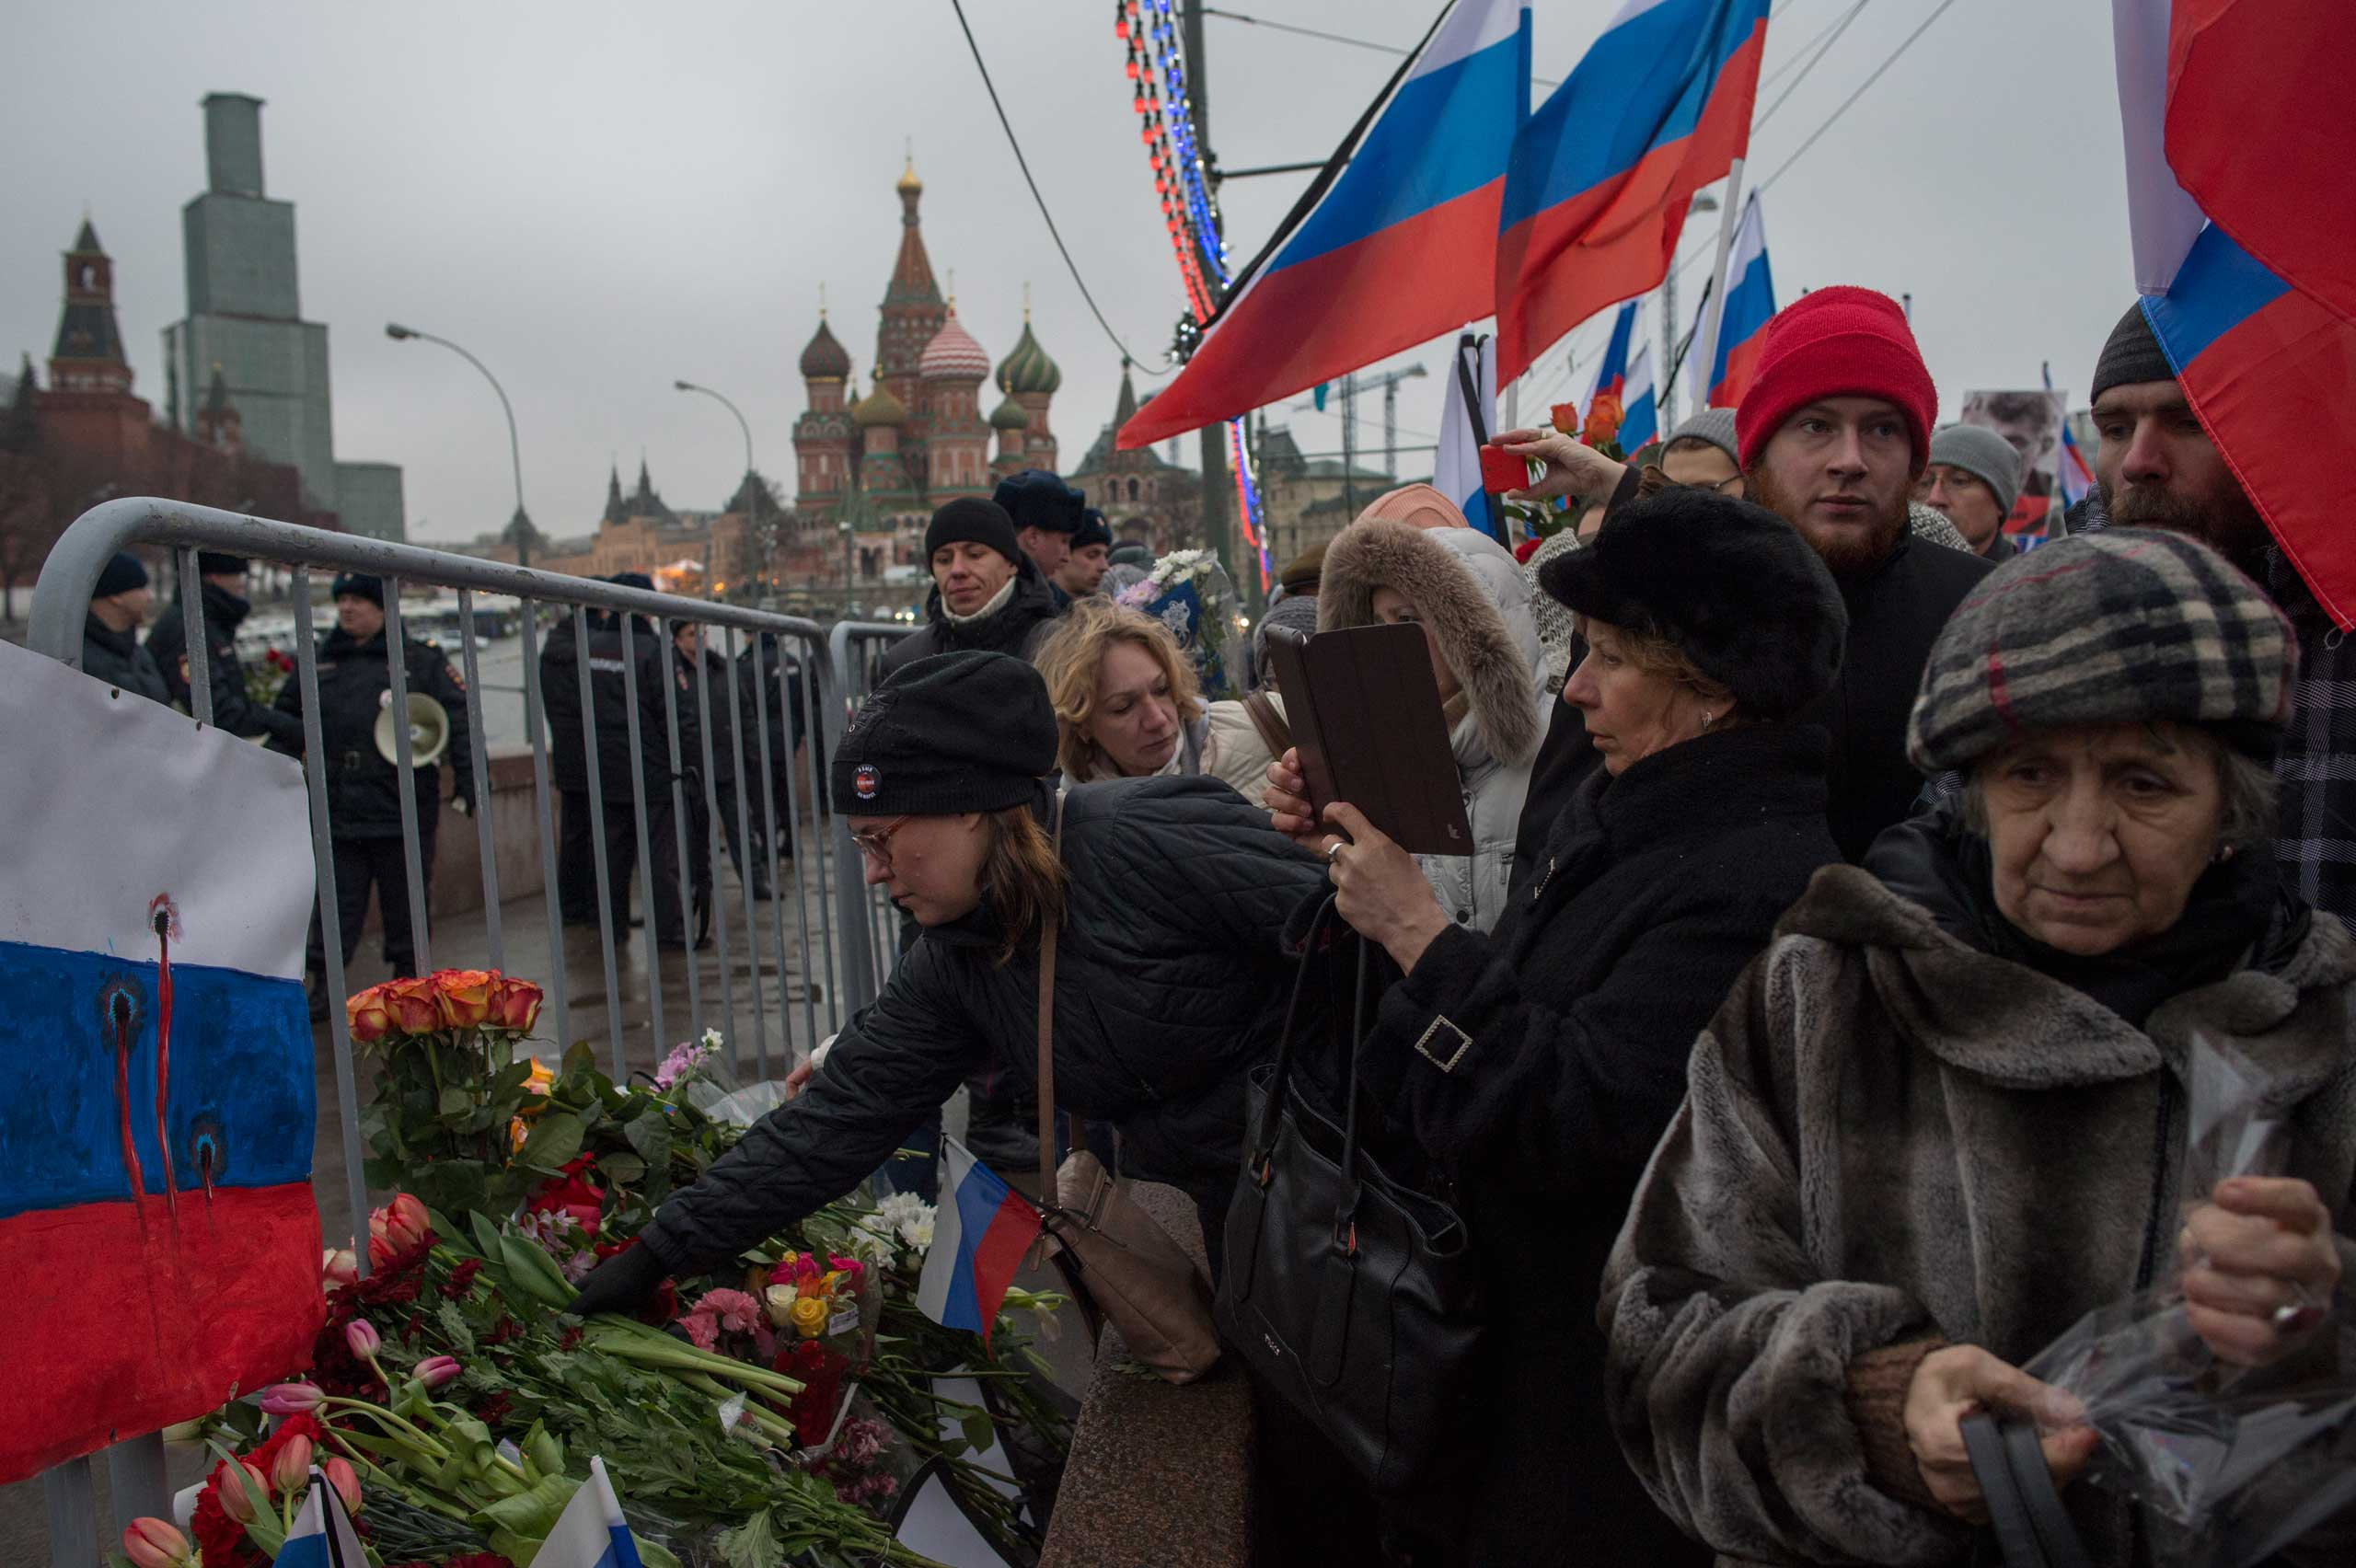 People lay flowers during the march in memory of opposition leader Boris Nemtsov near the Kremlin in Moscow on March 1, 2015.